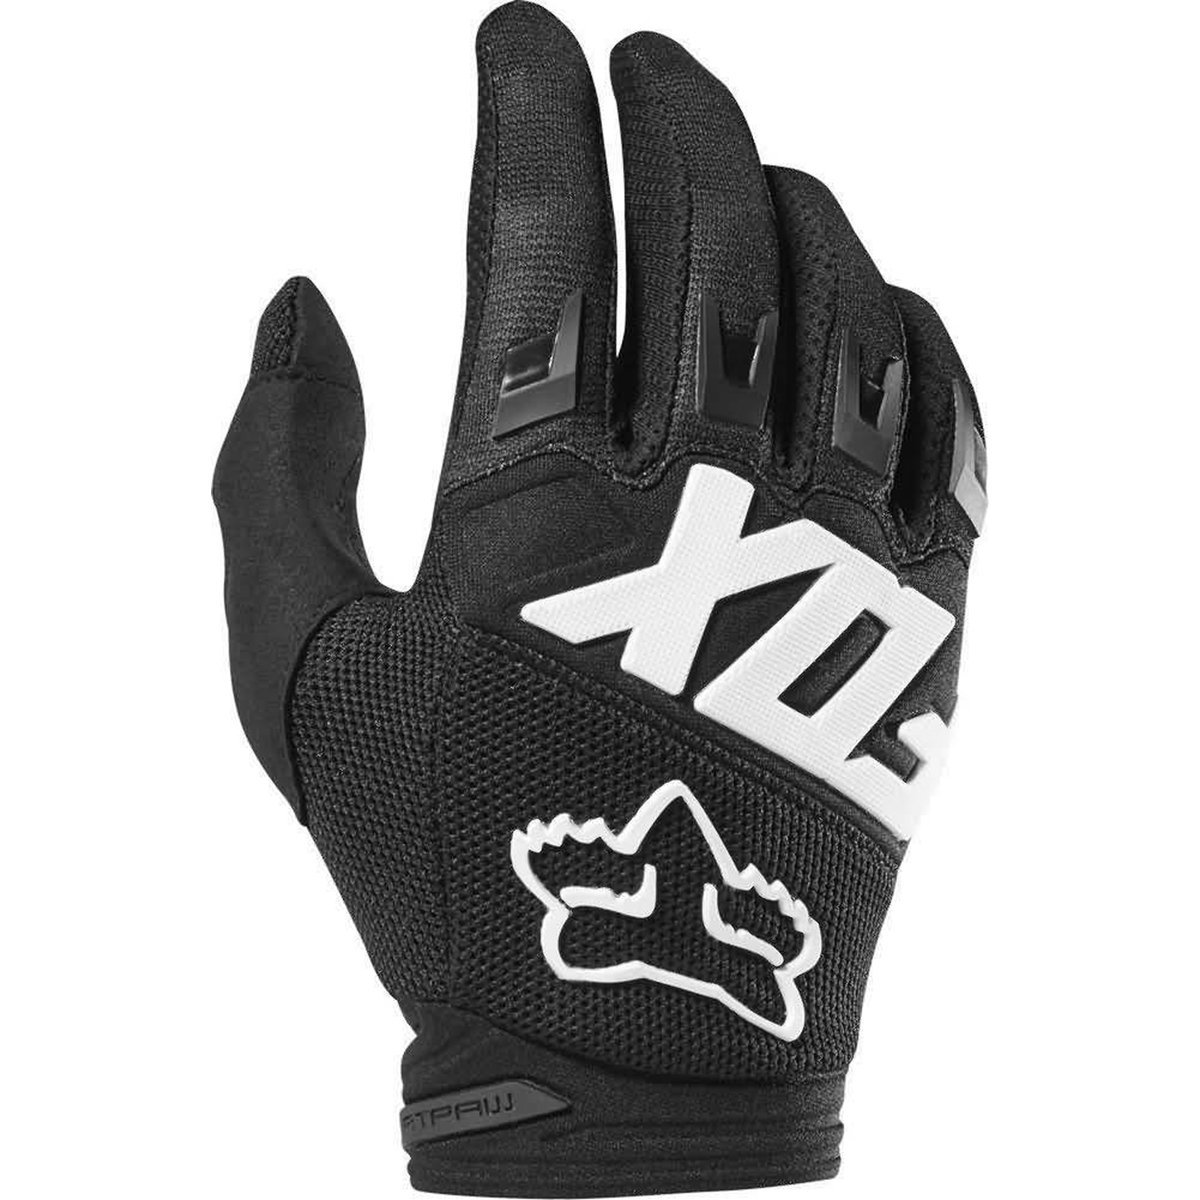 Fox Racing 2019 Youth Dirtpaw Gloves - Race (LARGE) (BLACK)